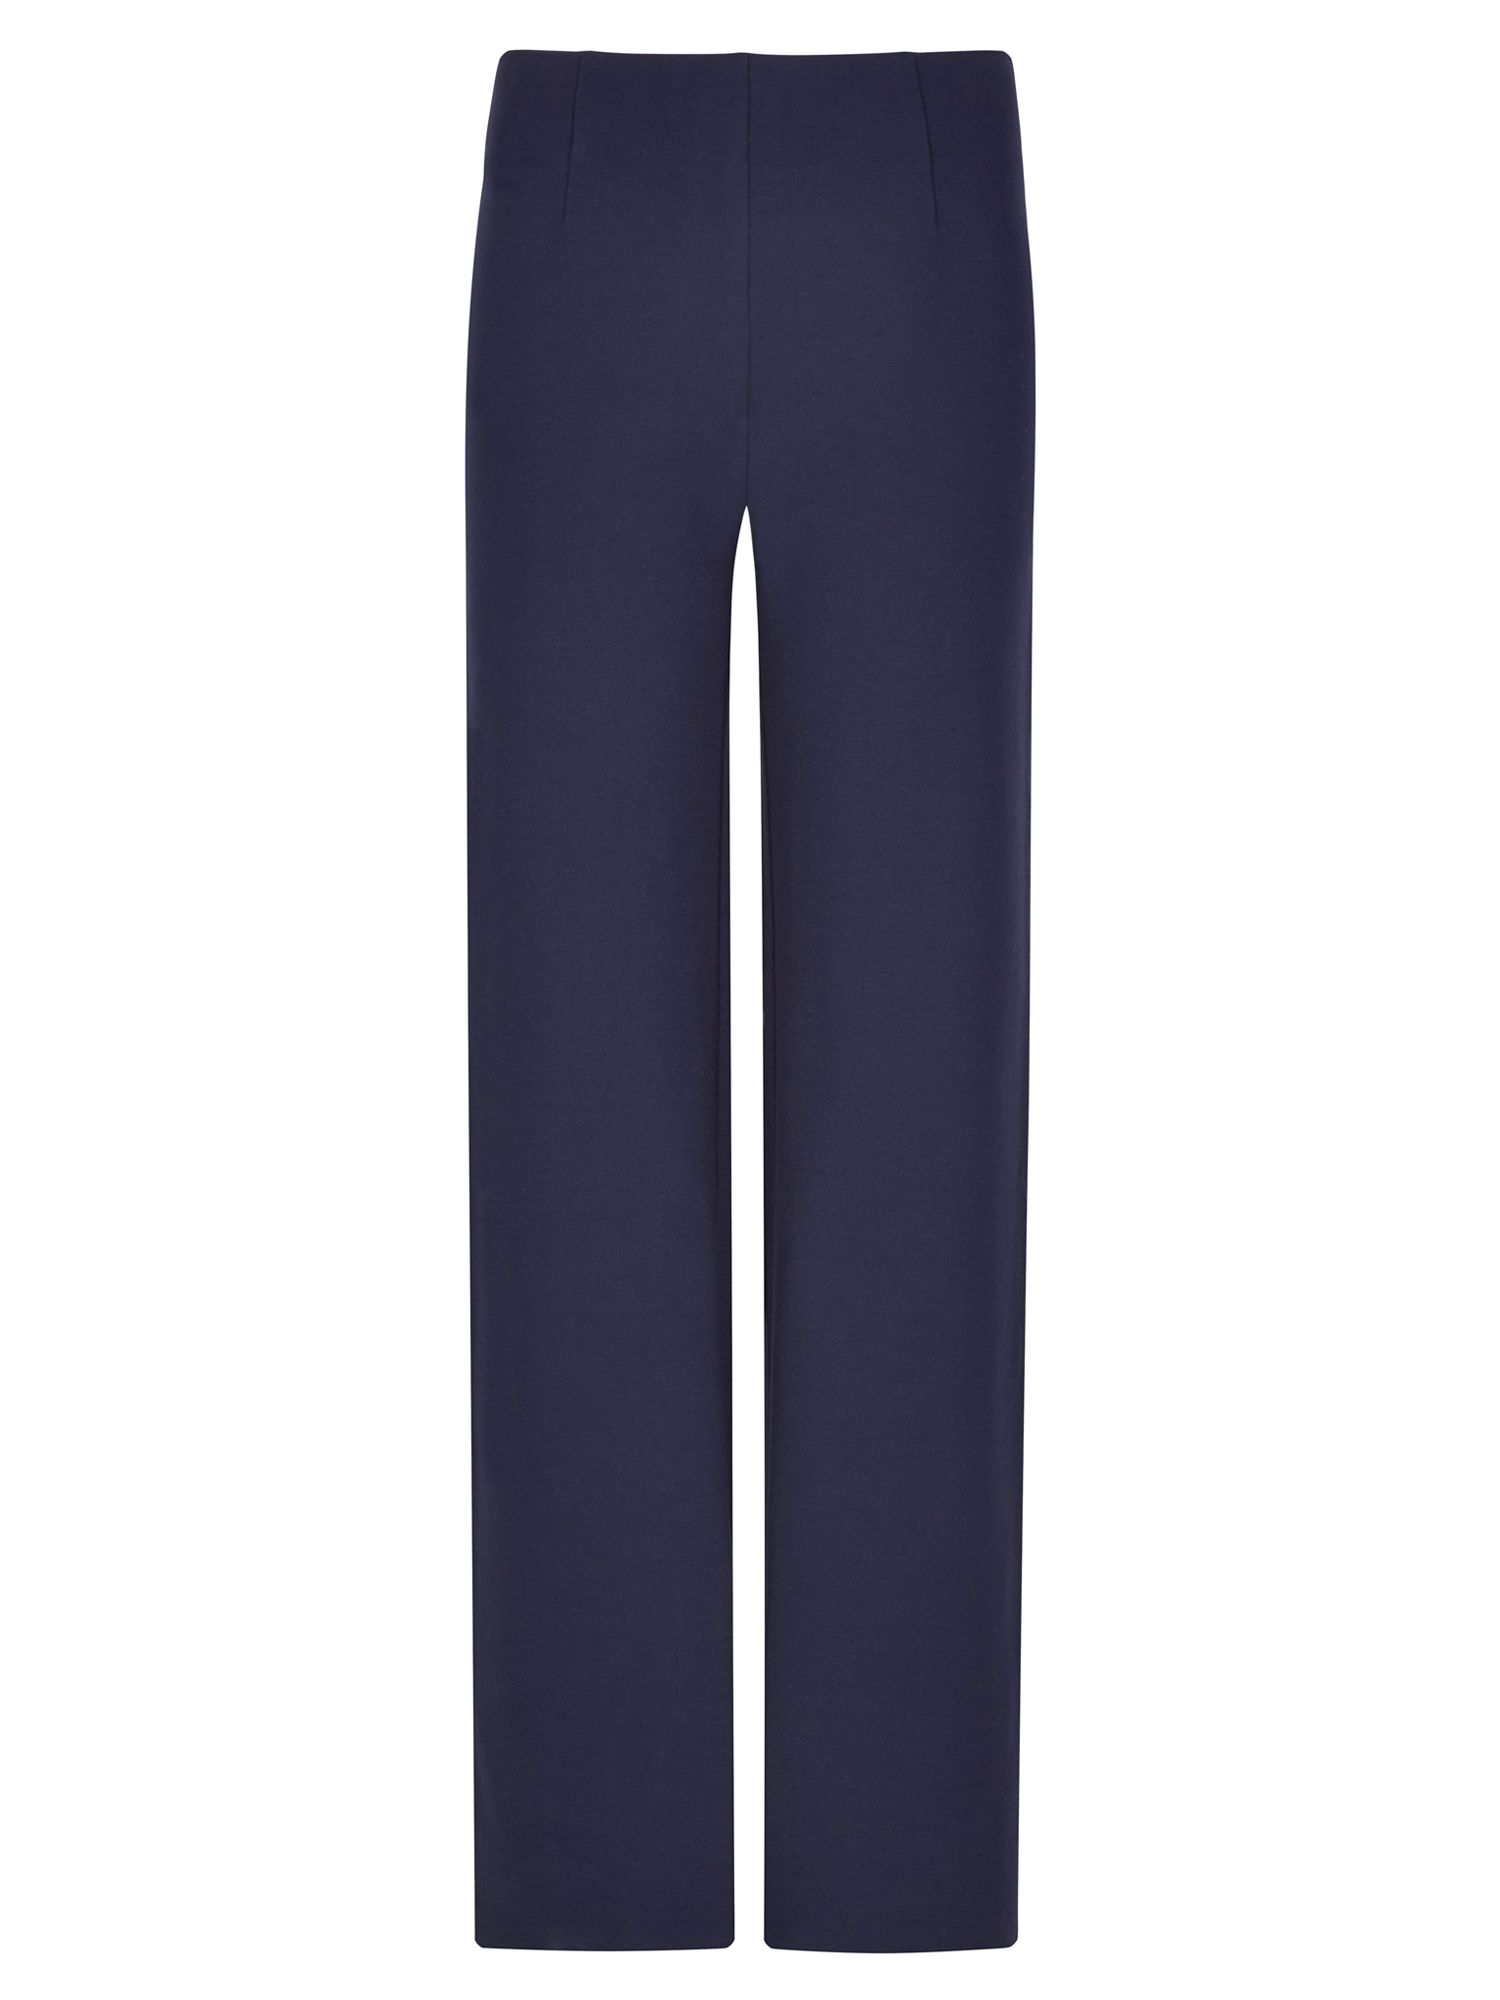 Winser London Miracle Trousers, Blue